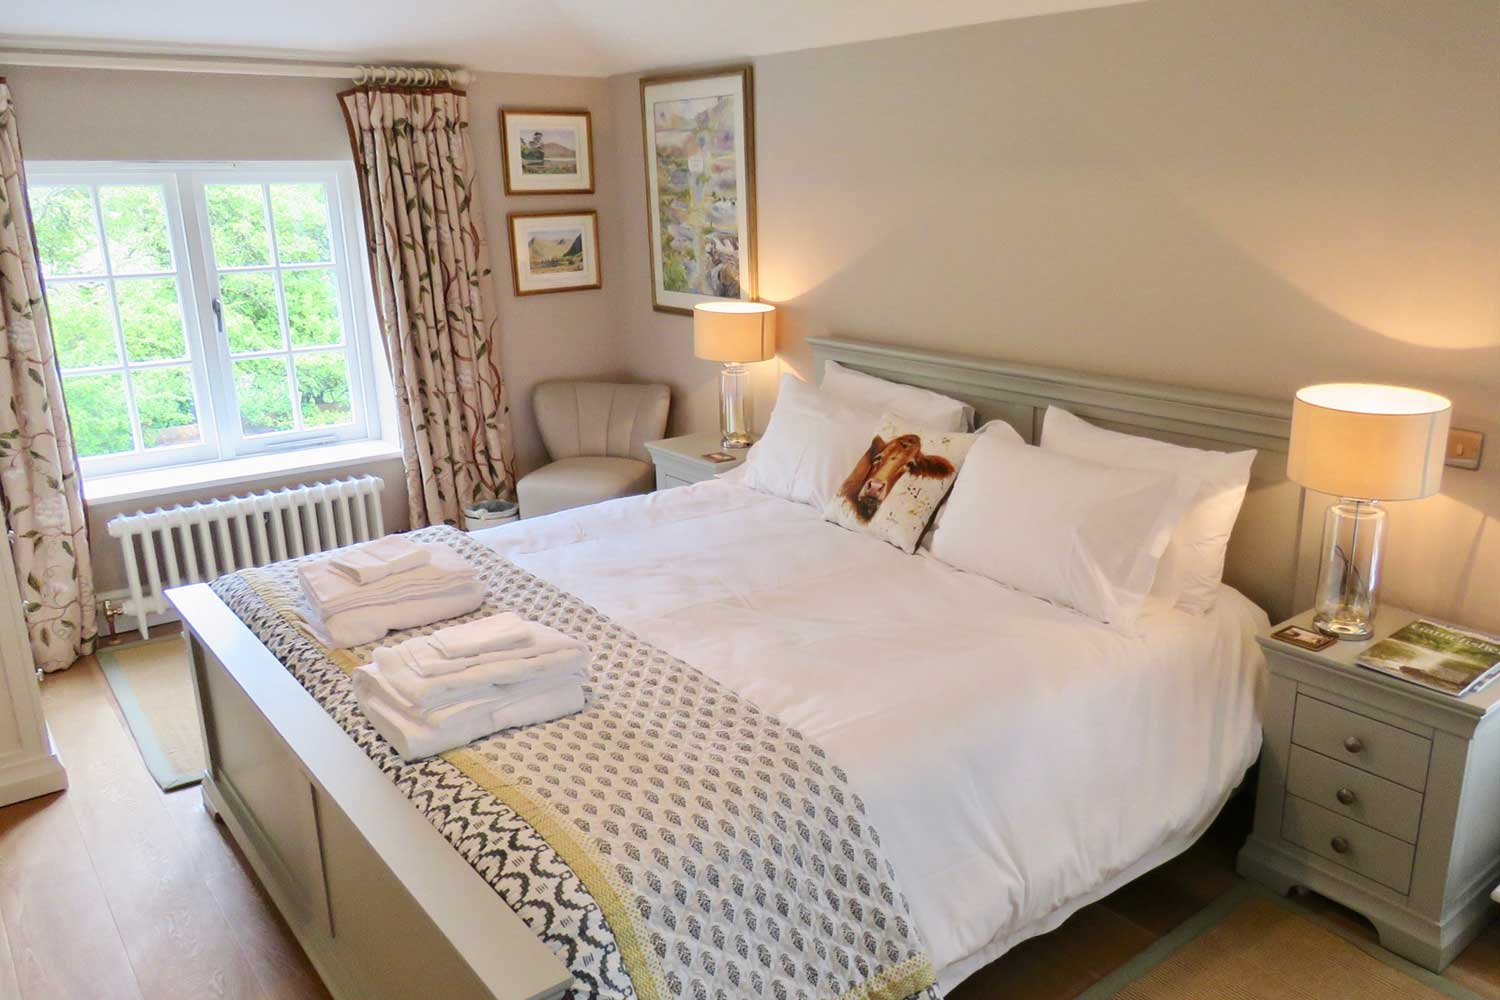 Bed and Breakfast Test Valley England | guest bedrooms offer super-king beds, crisp linens and lovely views